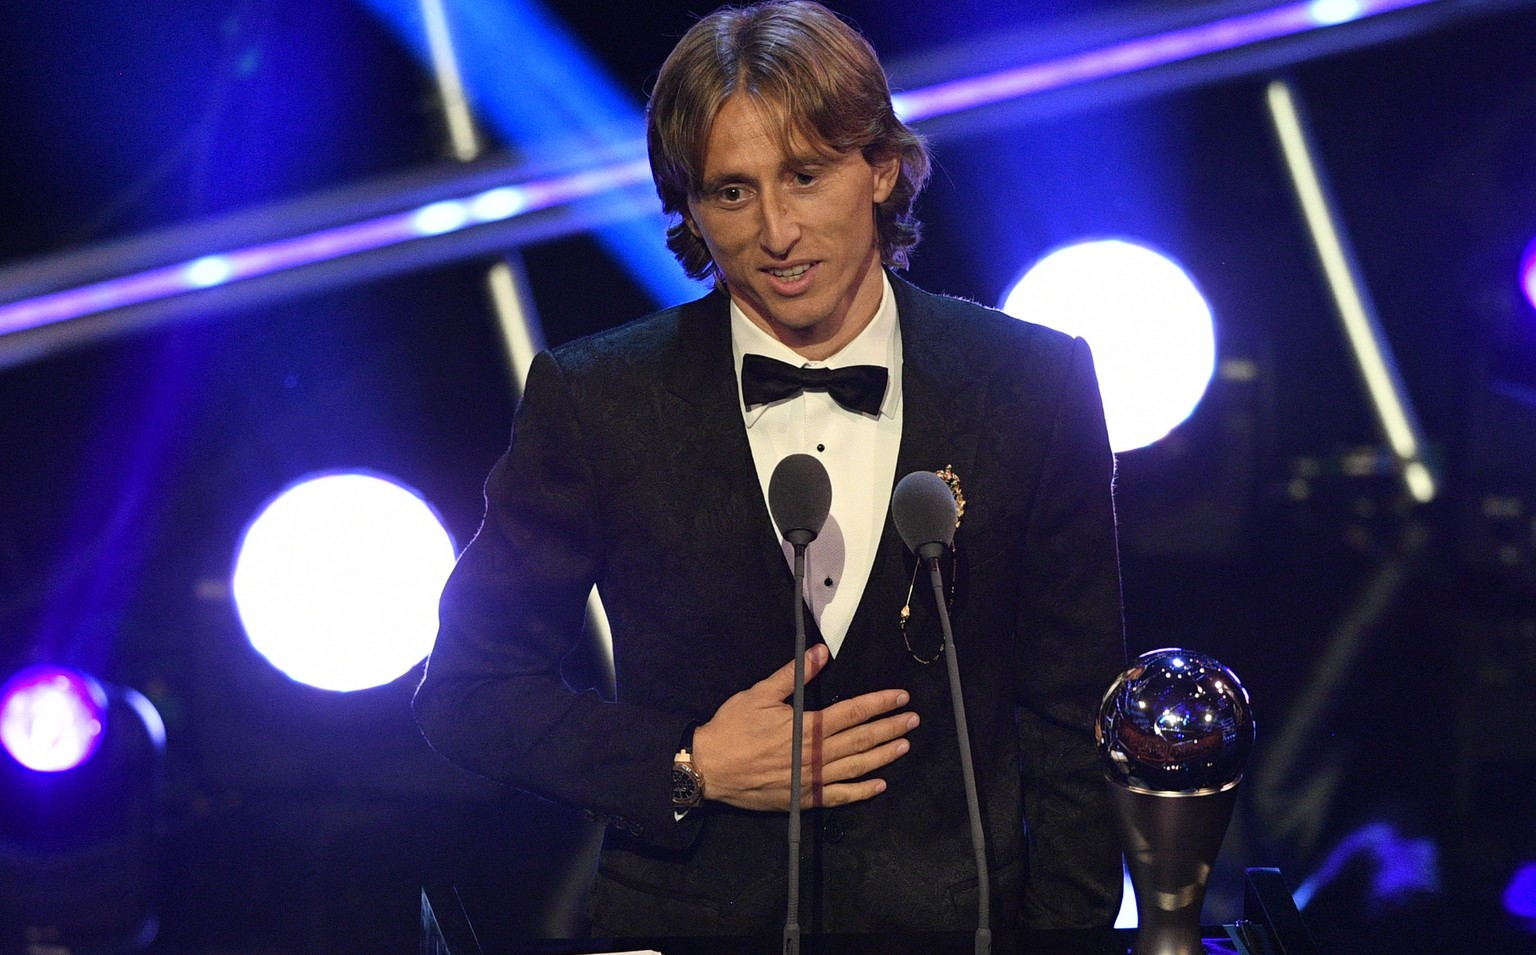 epa07044172 Real Madrid player Luka Modric receives the Best FIFA Men's Player award during the Best FIFA Football Awards 2018 in London, Great Britain, 24 September 2018.  EPA/NEIL HALL